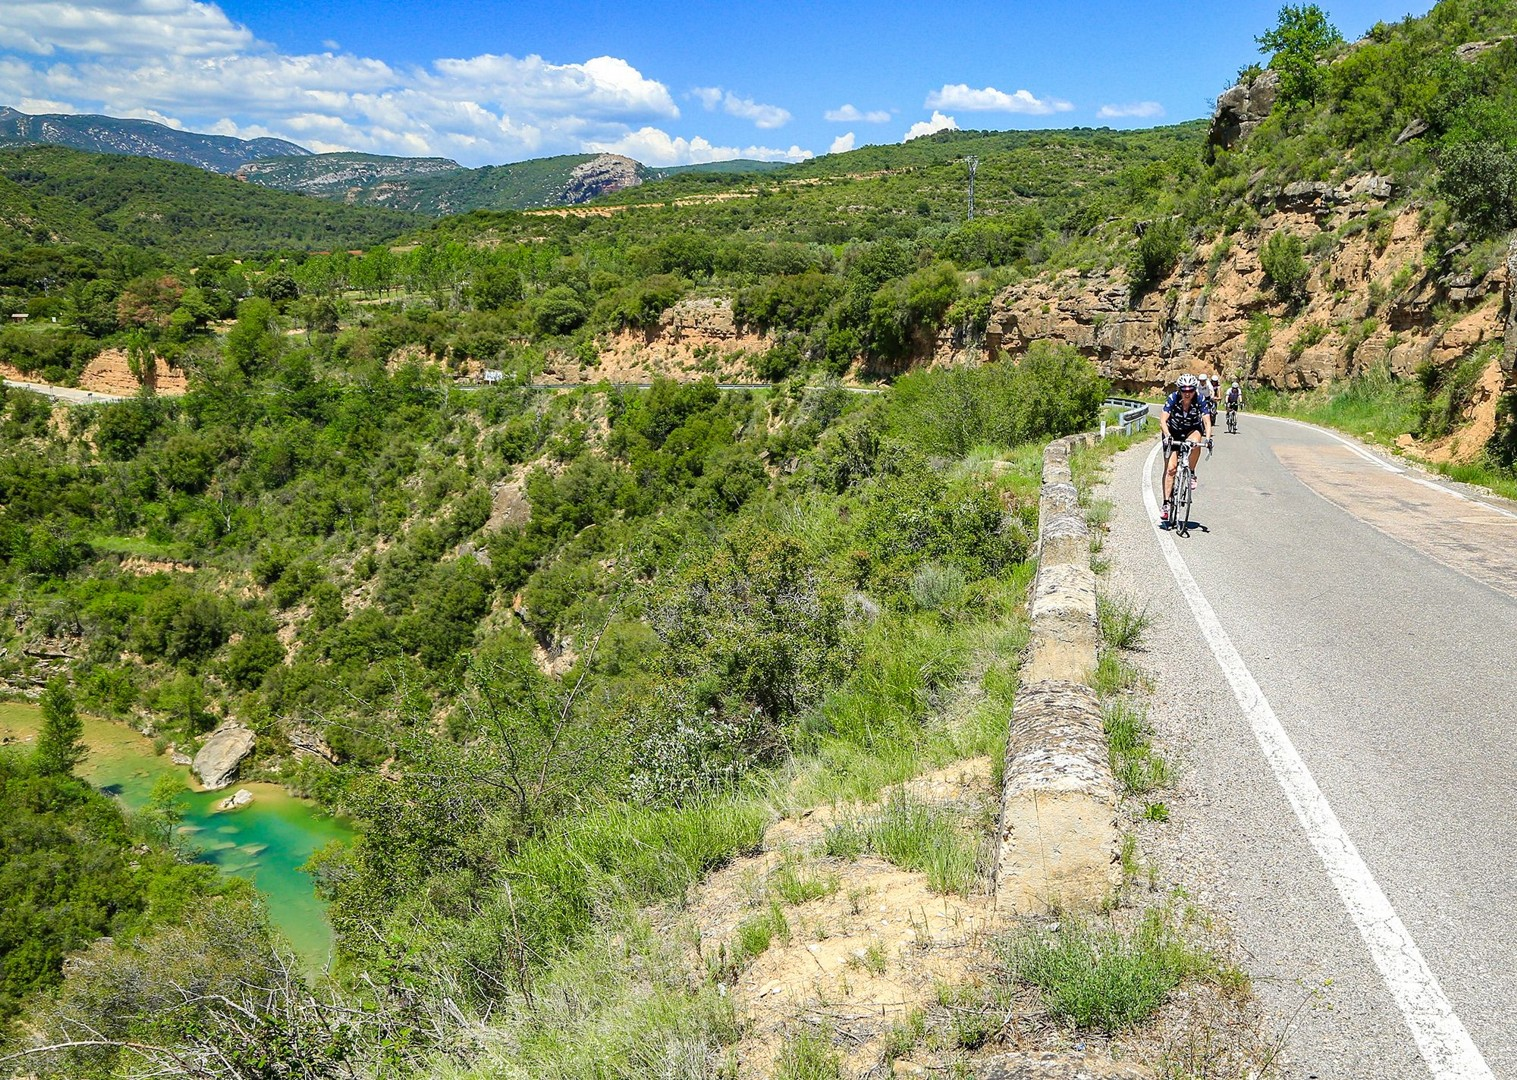 guided-road-cycling-in-spain-northern-holiday-ride-bilbao-to-barcelona-iconic-journeys.jpg - Northern Spain - Bilbao to Barcelona - Guided Road Cycling Holiday - Road Cycling